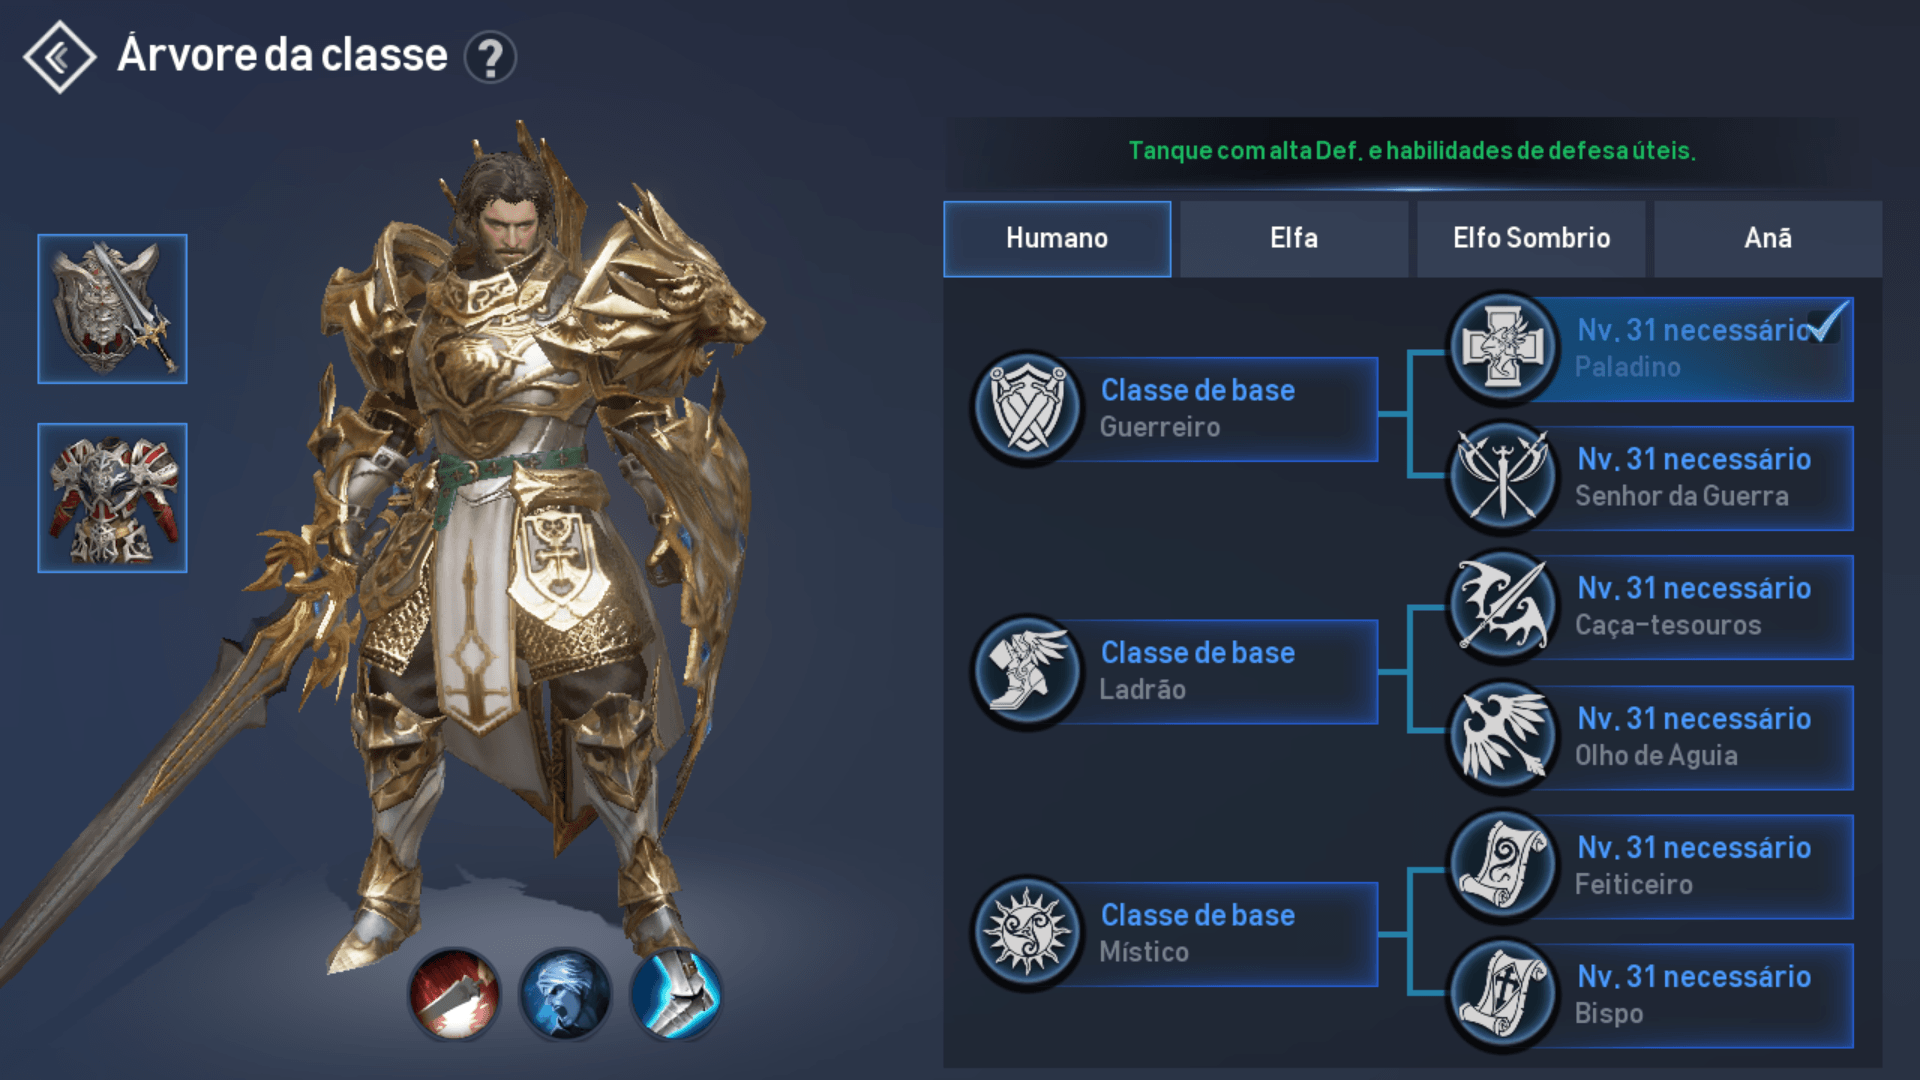 Lineage 2 Top 5 Classes Img 7 Pt